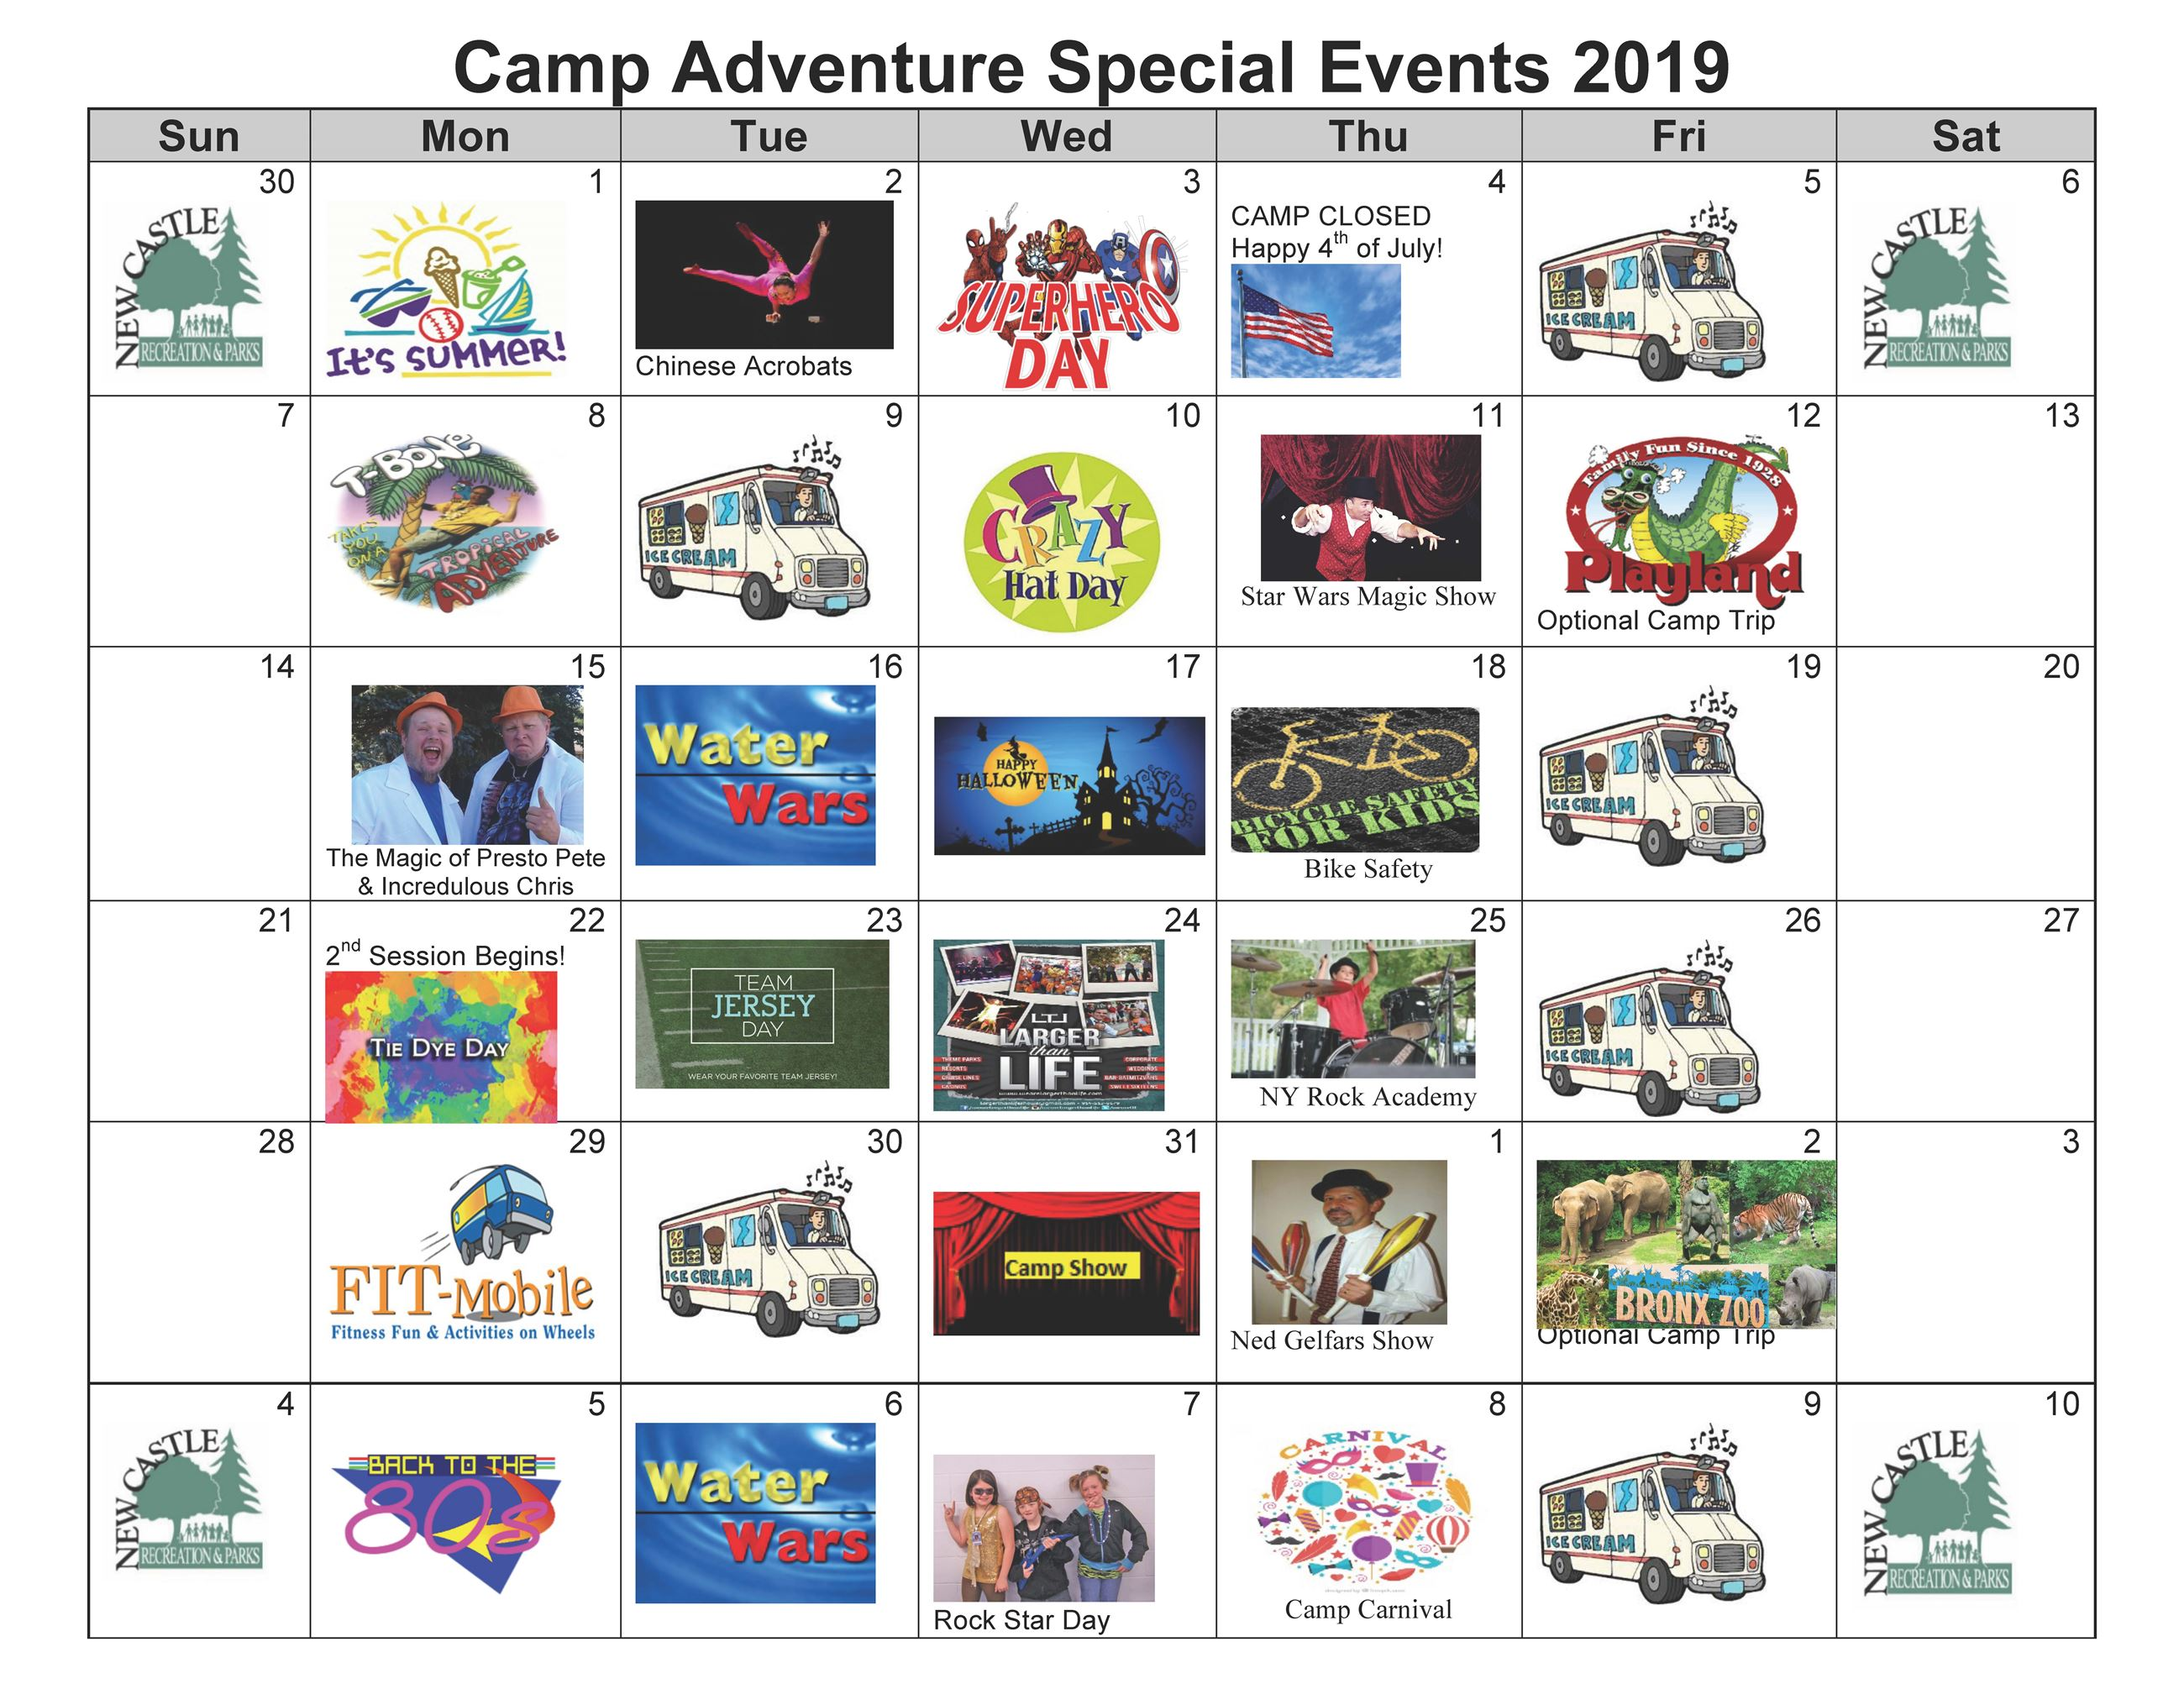 Camp Adventure Special Events 2019 Sample